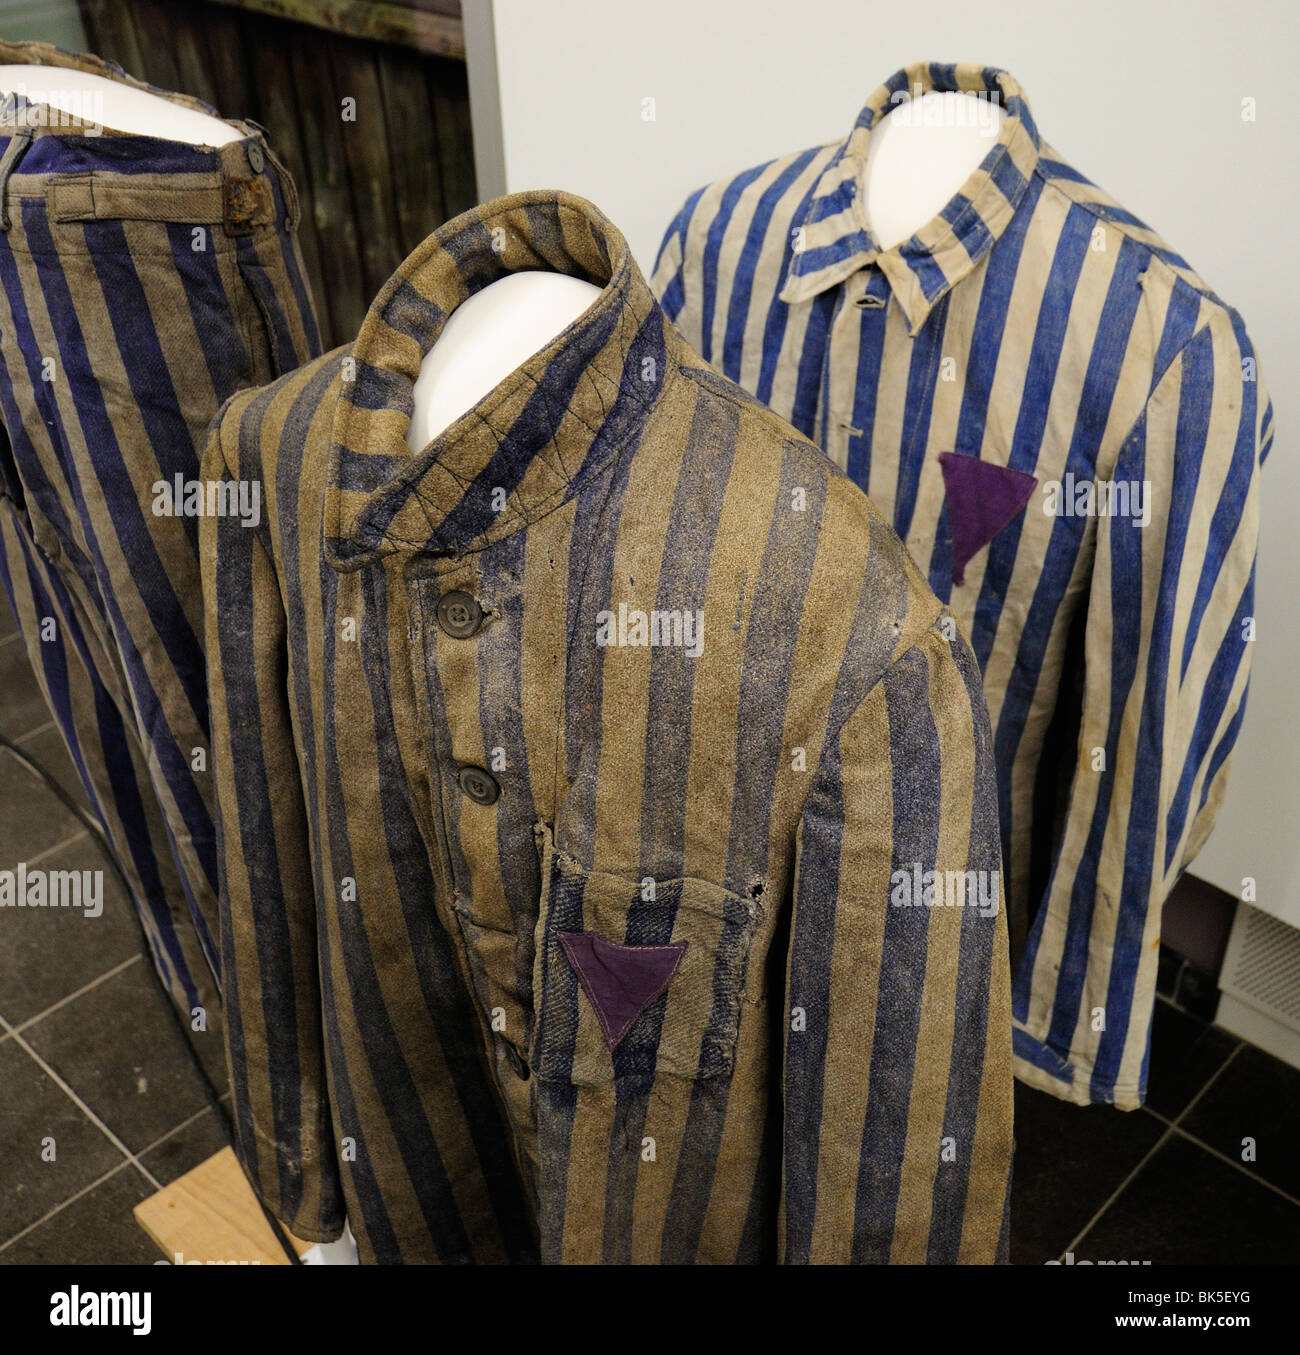 Striped uniforms of concentration camp prisoners on ...